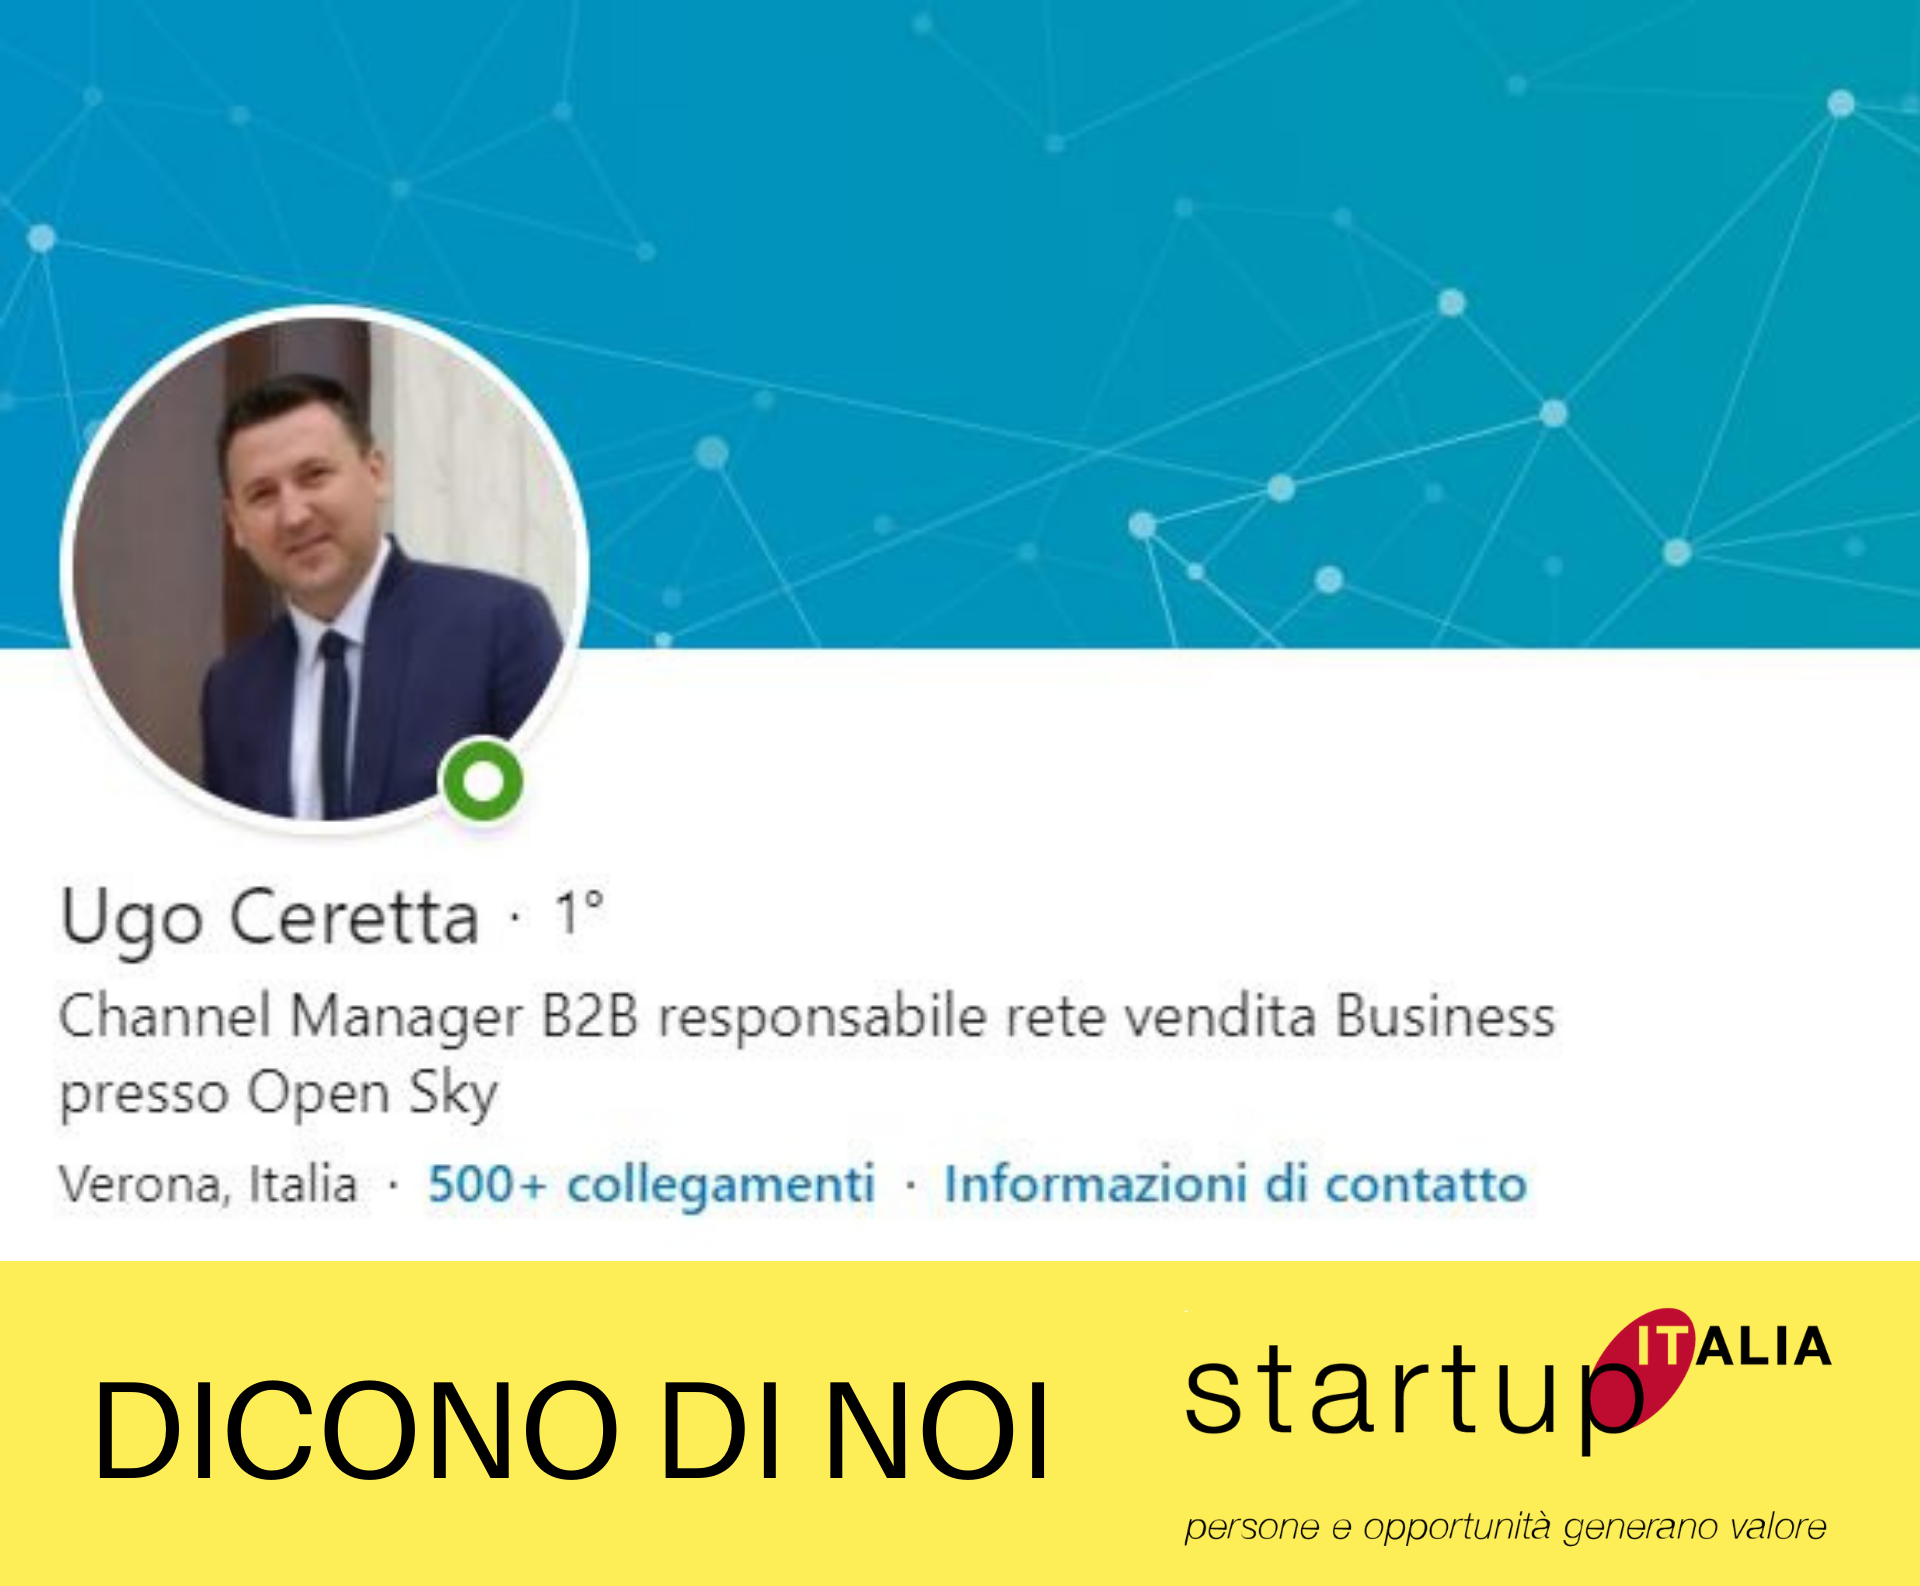 Ugo Ceretta – Channel Manager B2B presso Big Blu